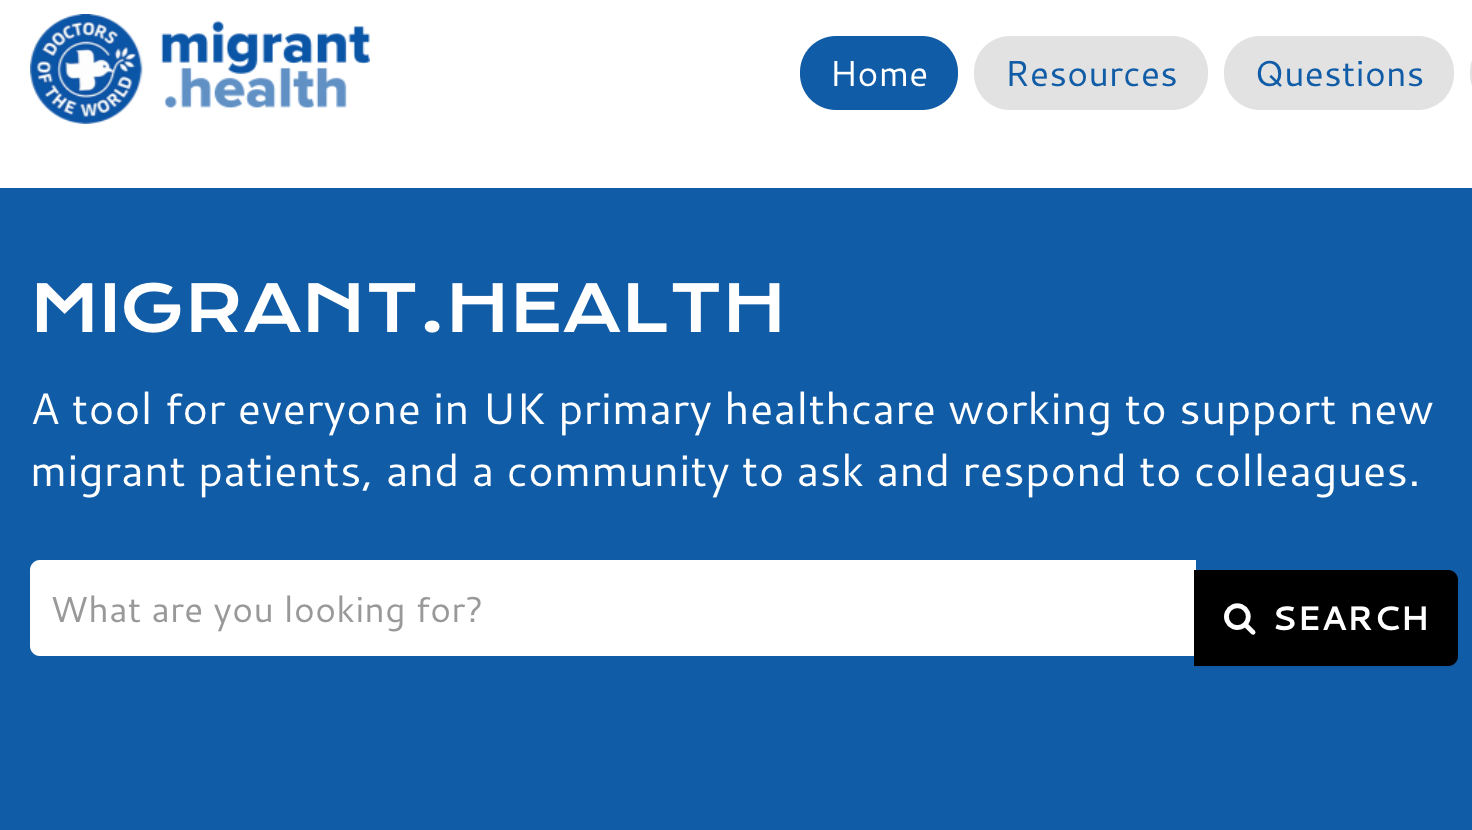 Loads more detail and information on migrant health